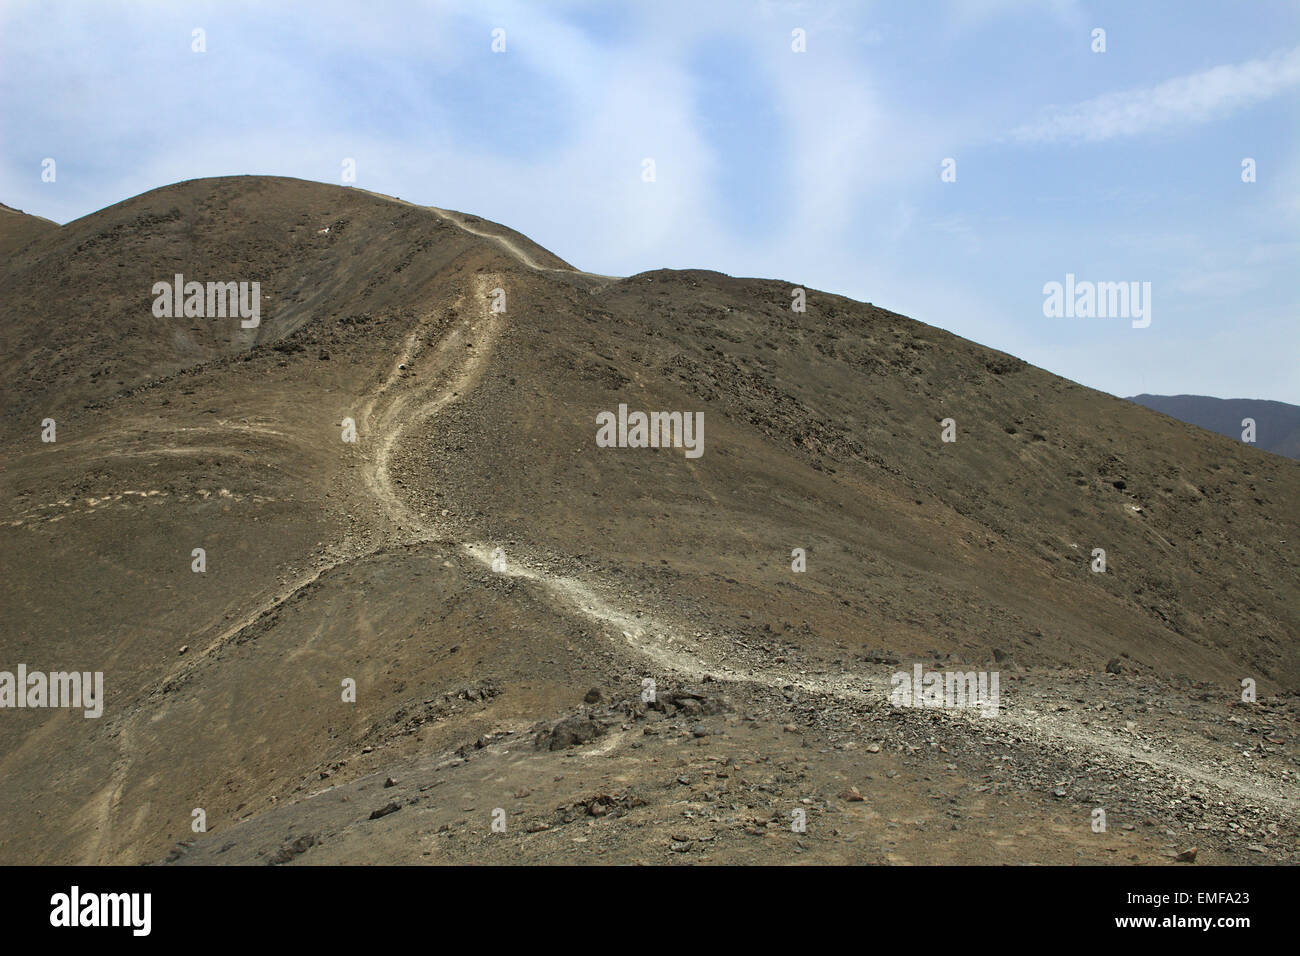 Desert Mountain Track - Stock Image